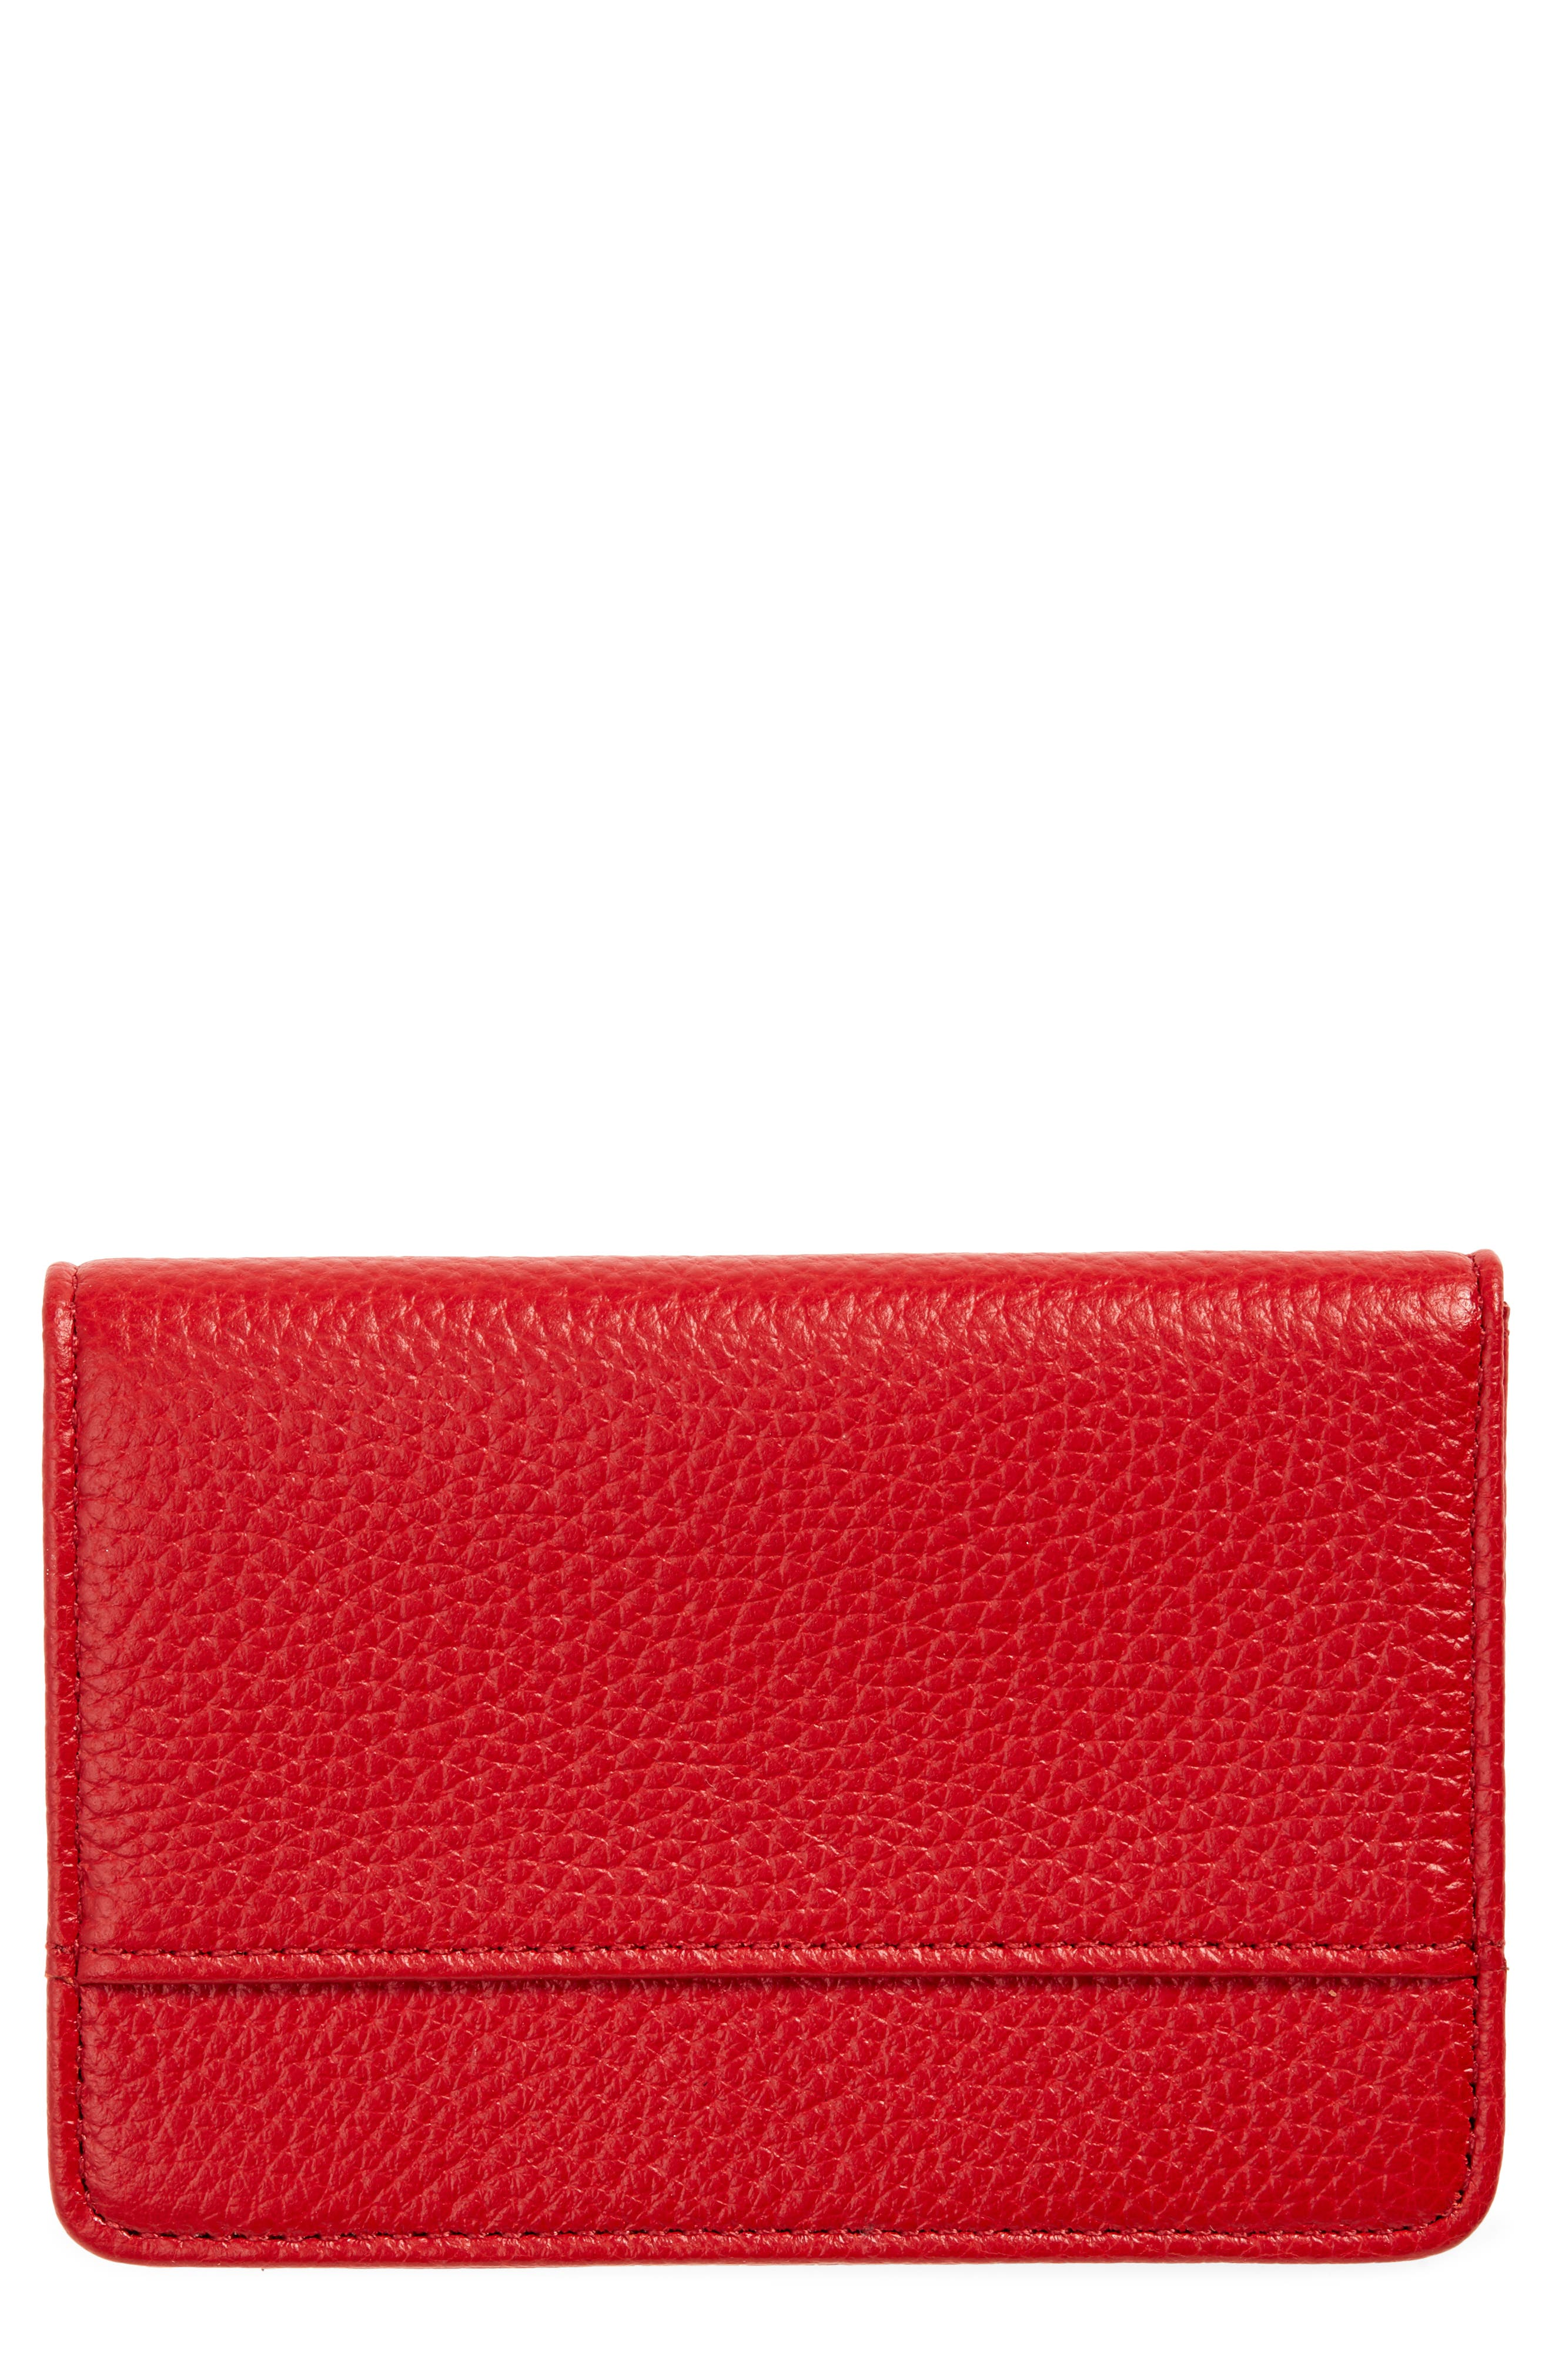 Richly pebbled leather distinguishes a compact card case perfectly sized to keep essential cards, a bit of cash and your ID neatly organized. Style Name: Nordstrom Ruby Pebbled Leather Cardholder. Style Number: 5674473. Available in stores.